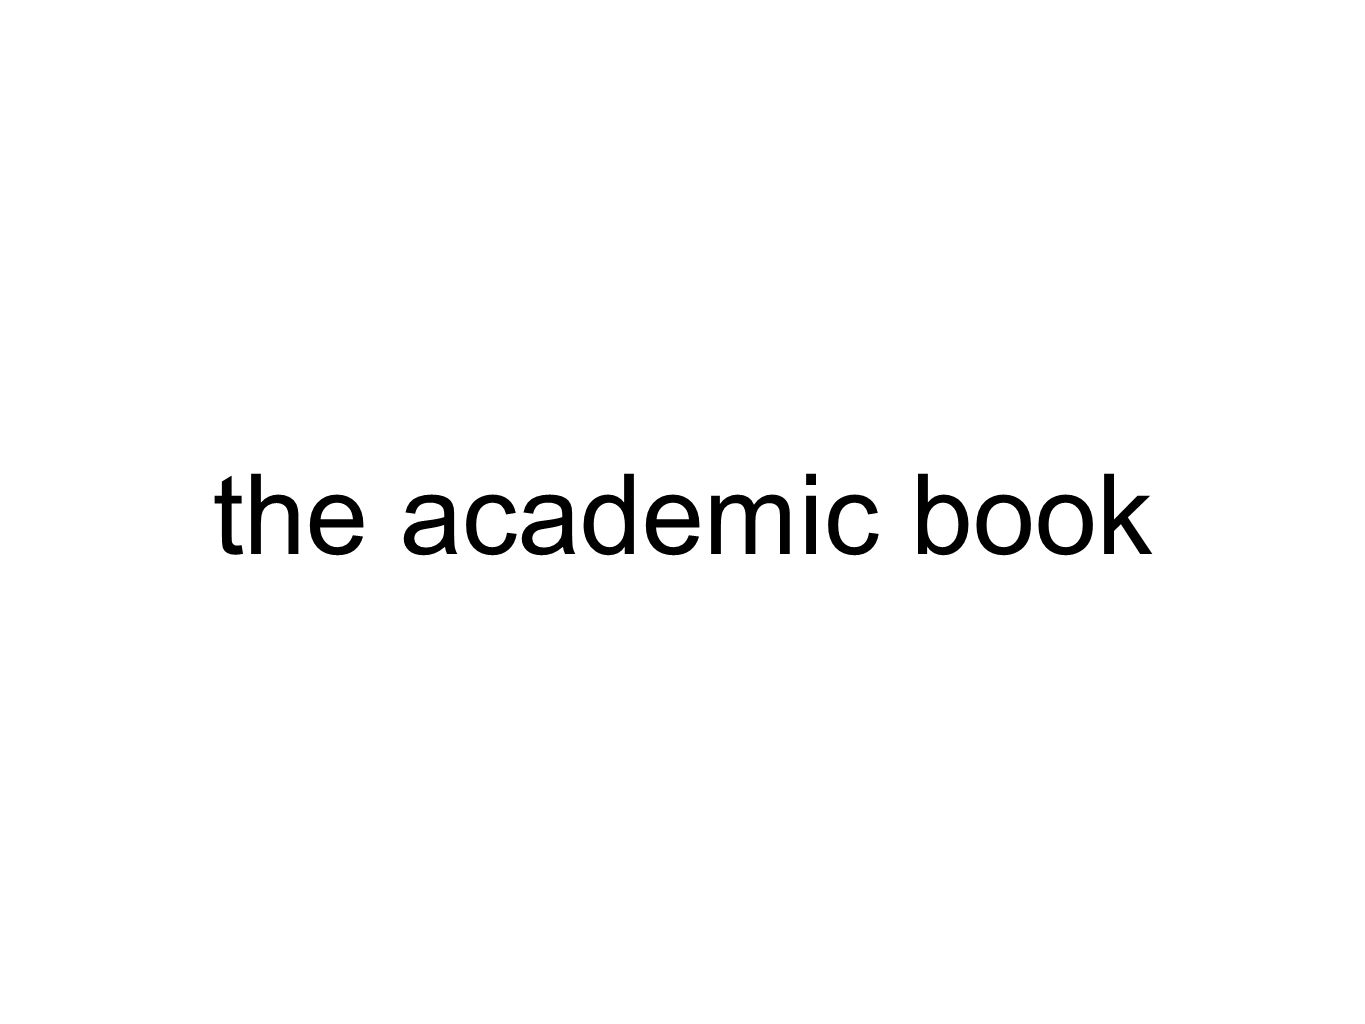 the academic book